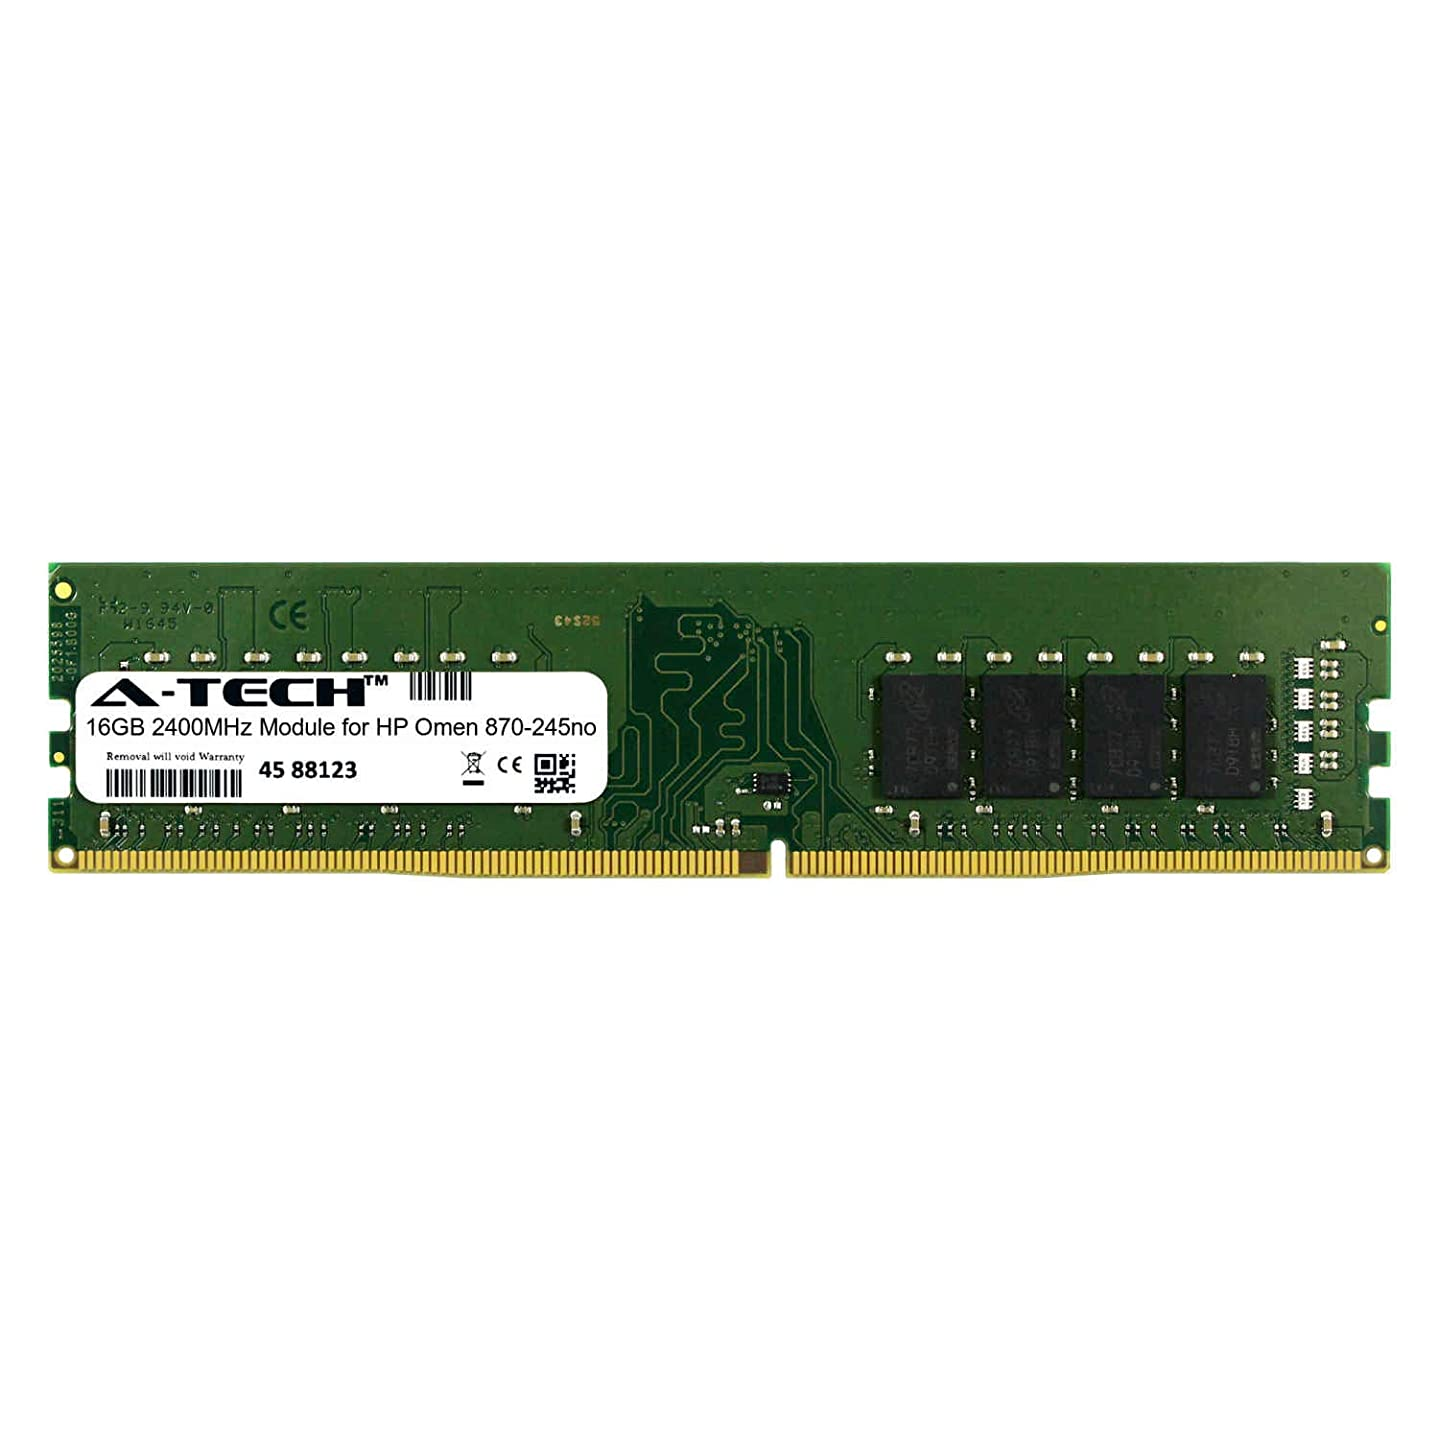 A-Tech 16GB Module for HP Omen 870-245no Desktop & Workstation Motherboard Compatible DDR4 2400Mhz Memory Ram (ATMS282303A25822X1)